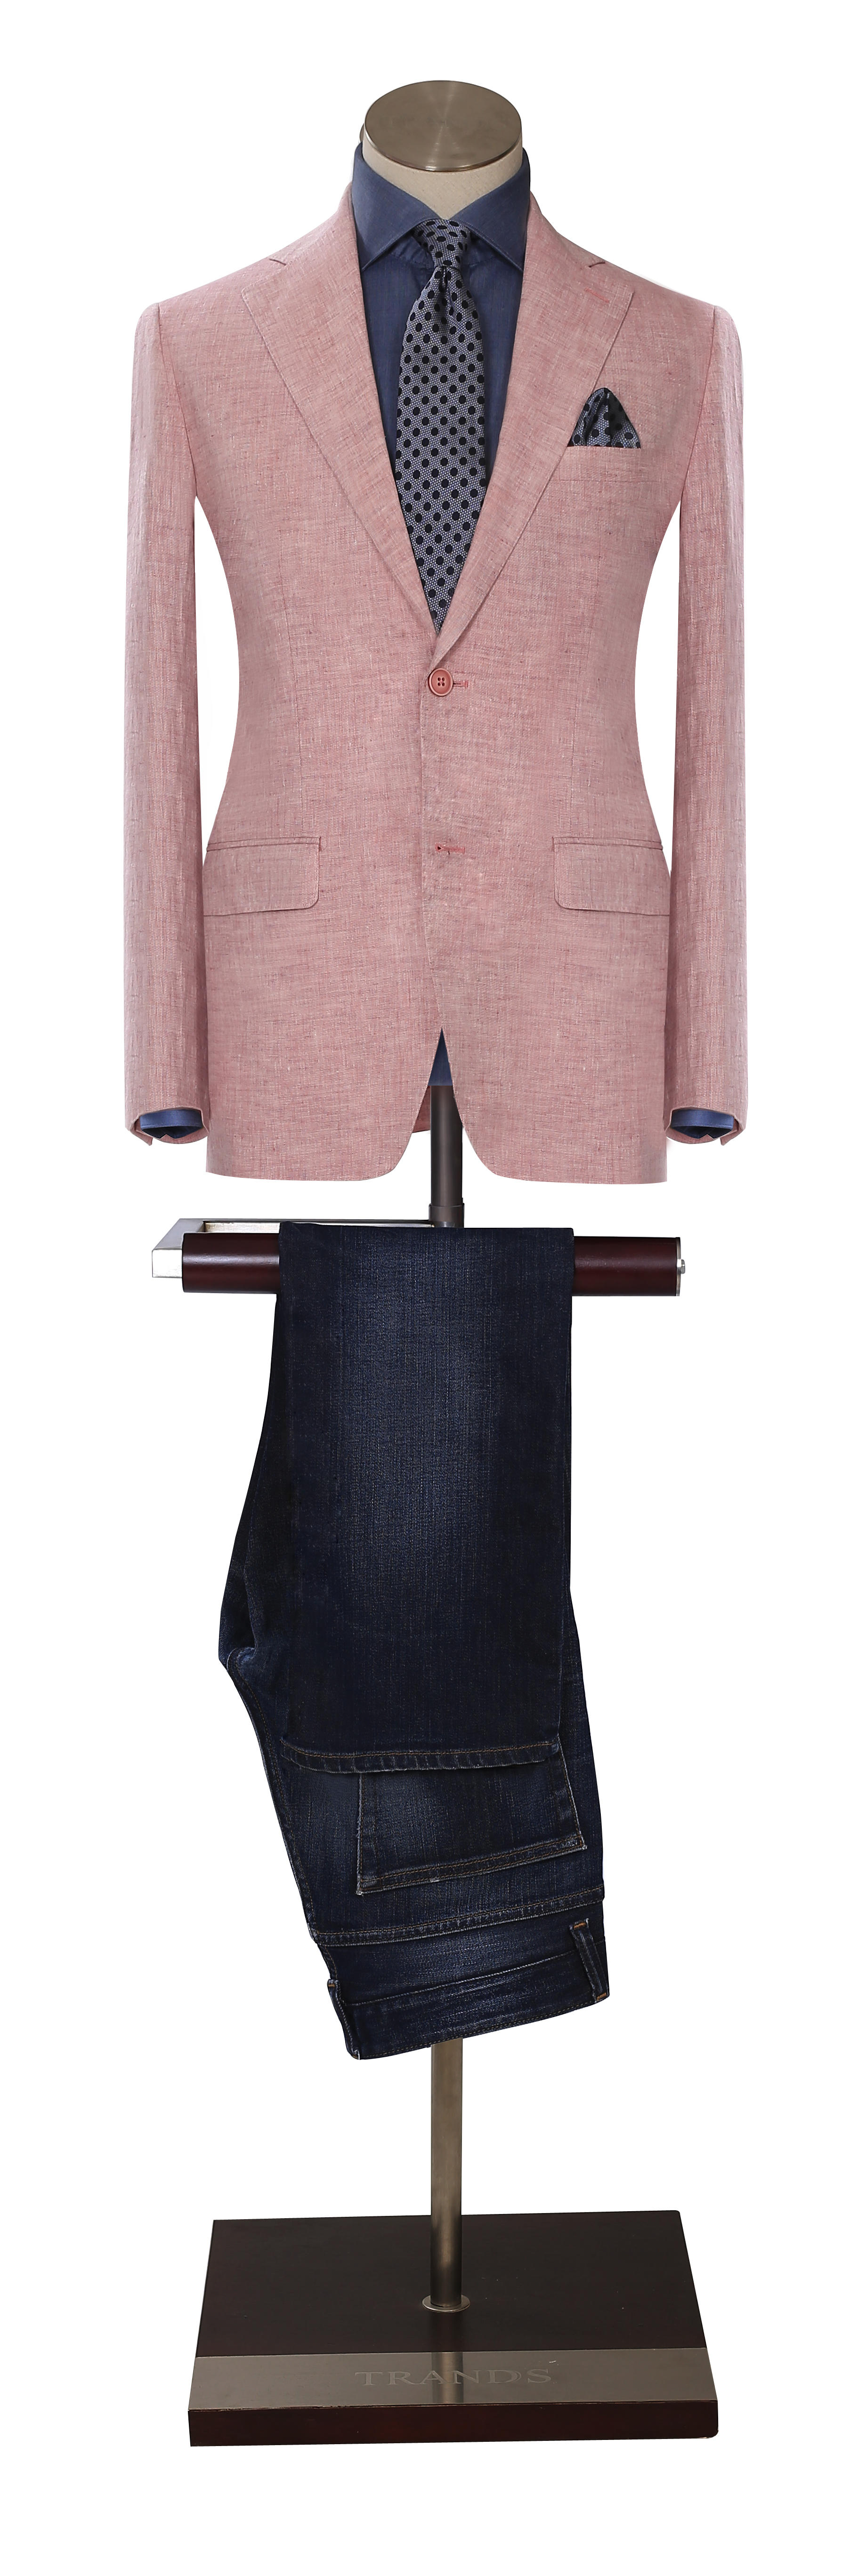 Invellus custom suits shirts for men coupons near me in for Custom shirt stores near me